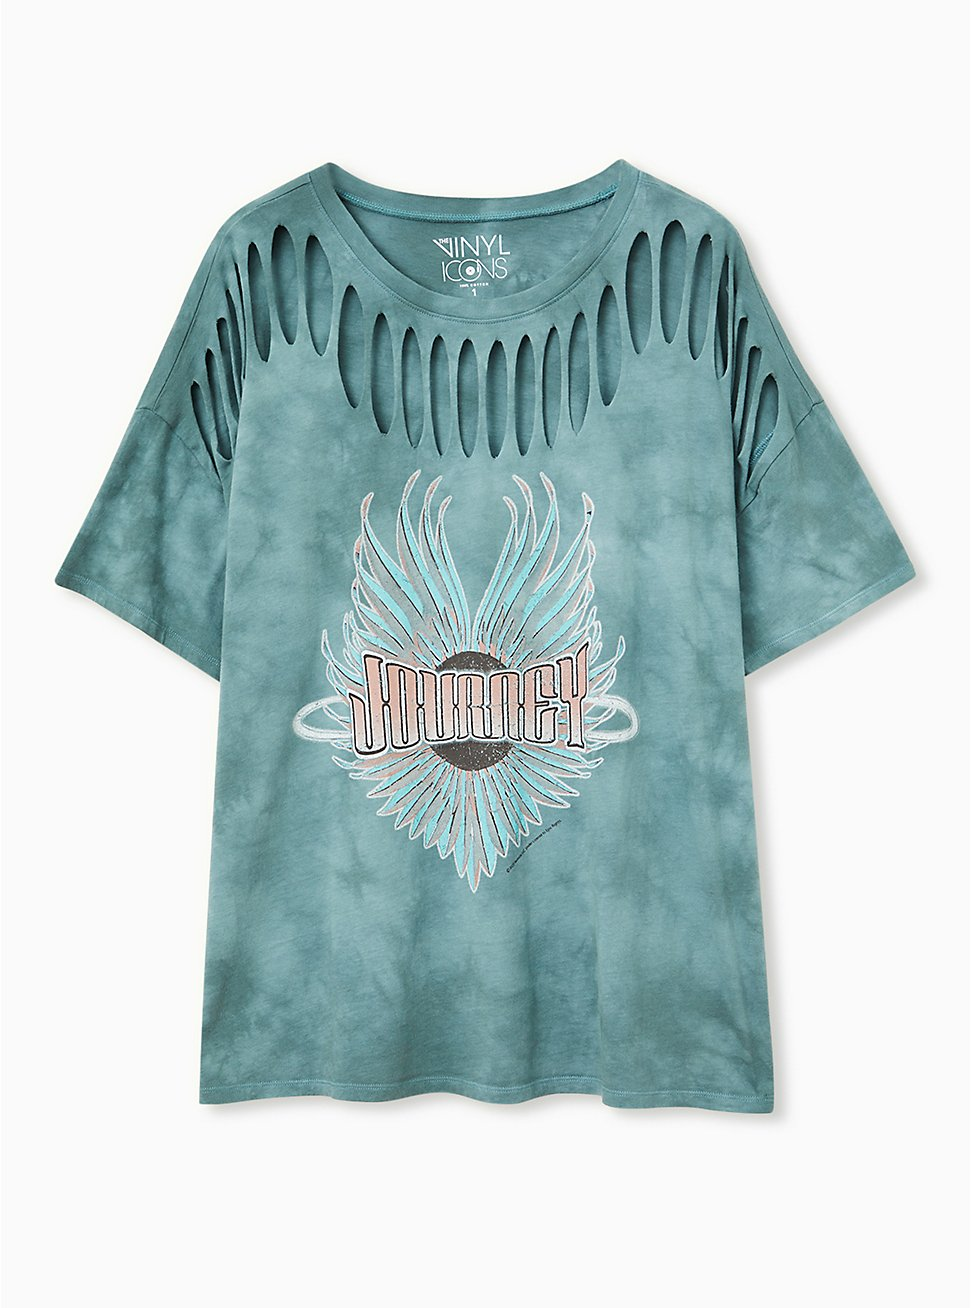 Plus Size Journey Teal Tie-Dye Cotton Slashed Tee, JUNEBUG, hi-res